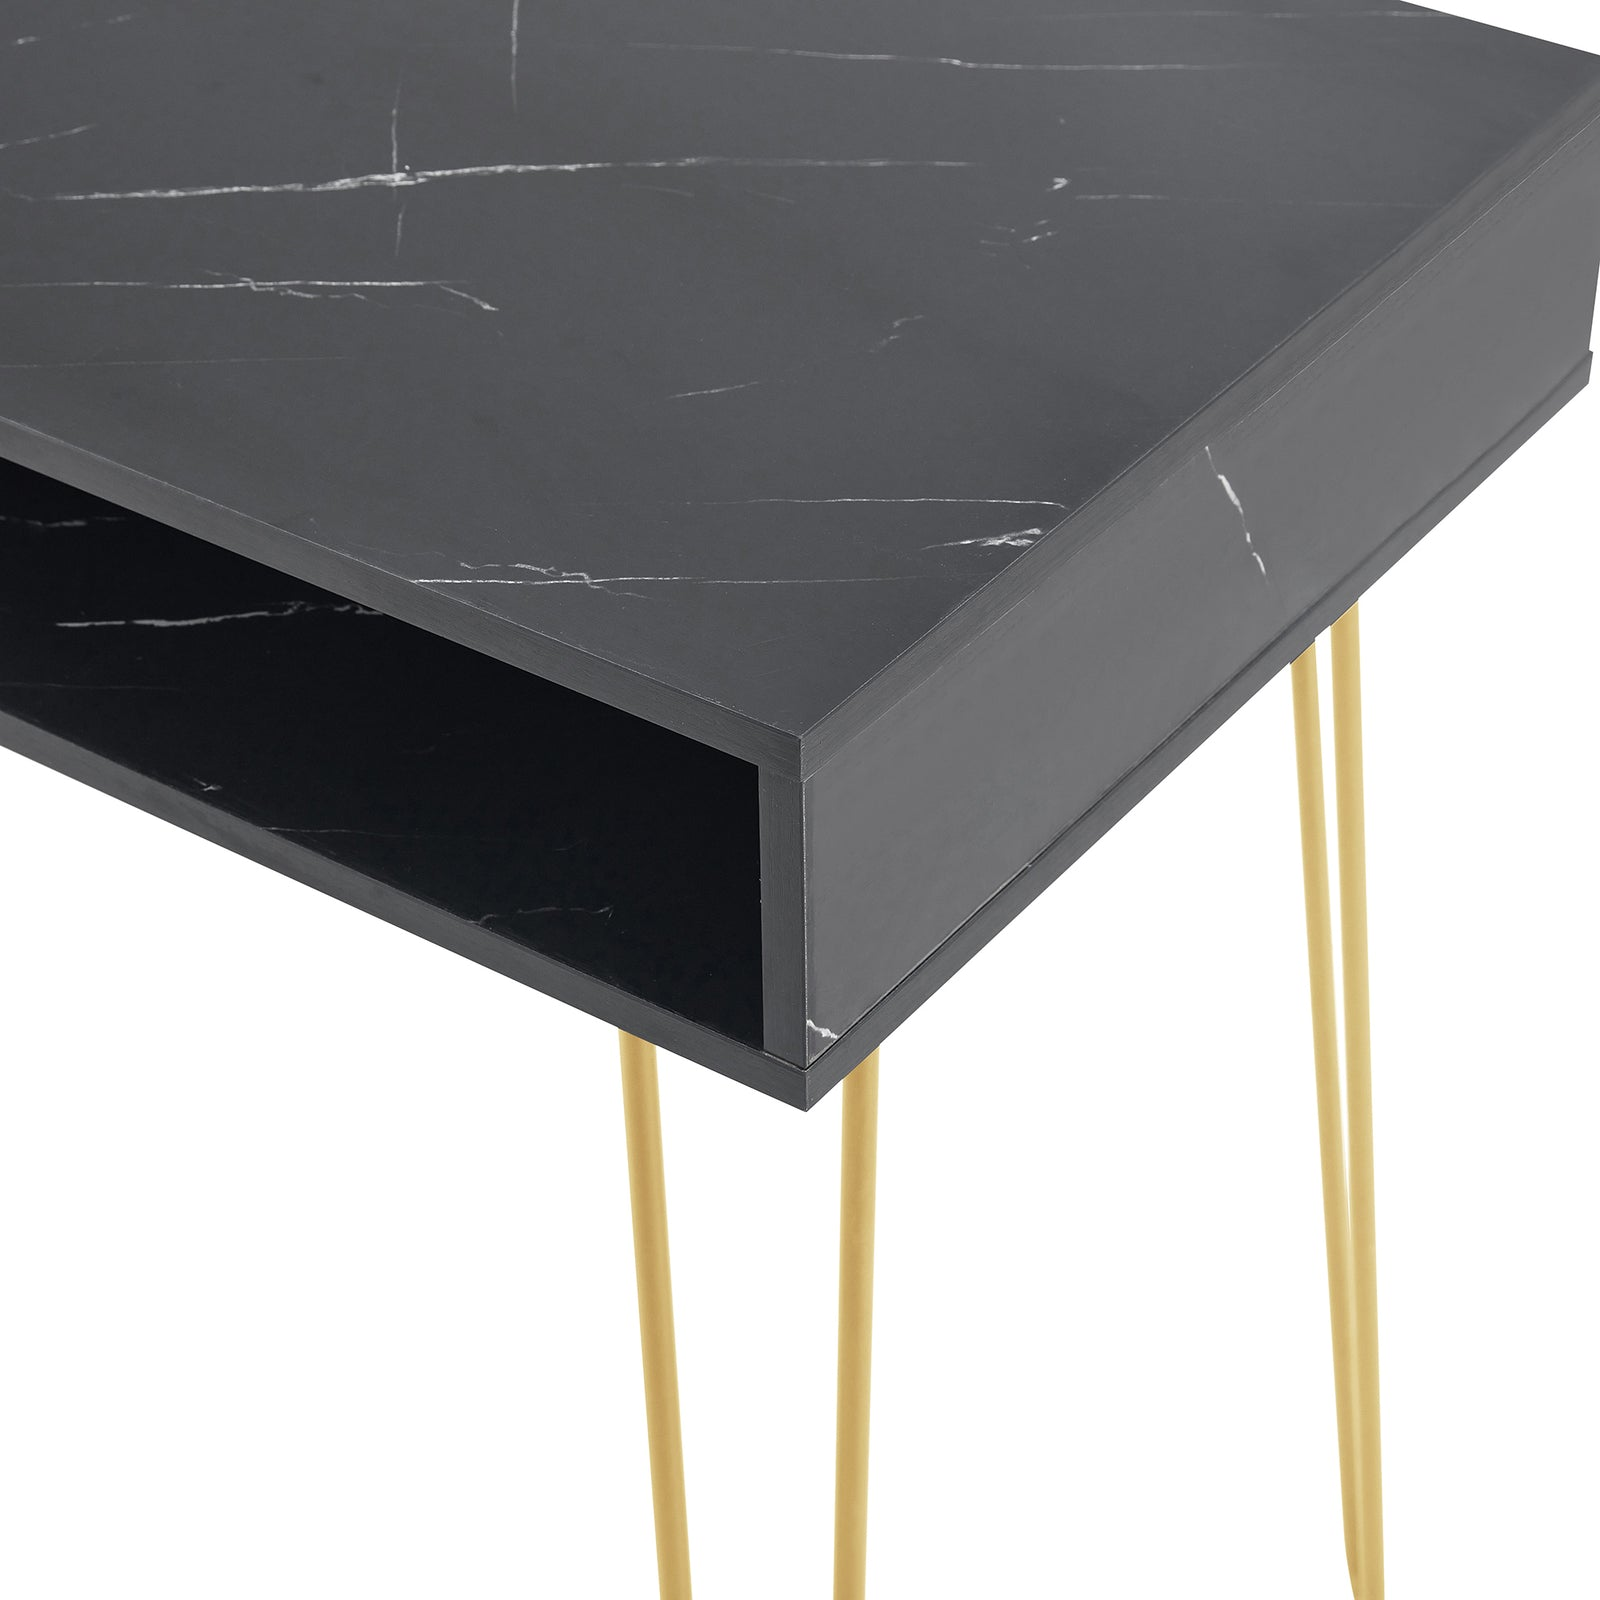 Beauty Table Side End Table Modern Marble MDF Top With Sturdy Gold Metal Legs Black - Top